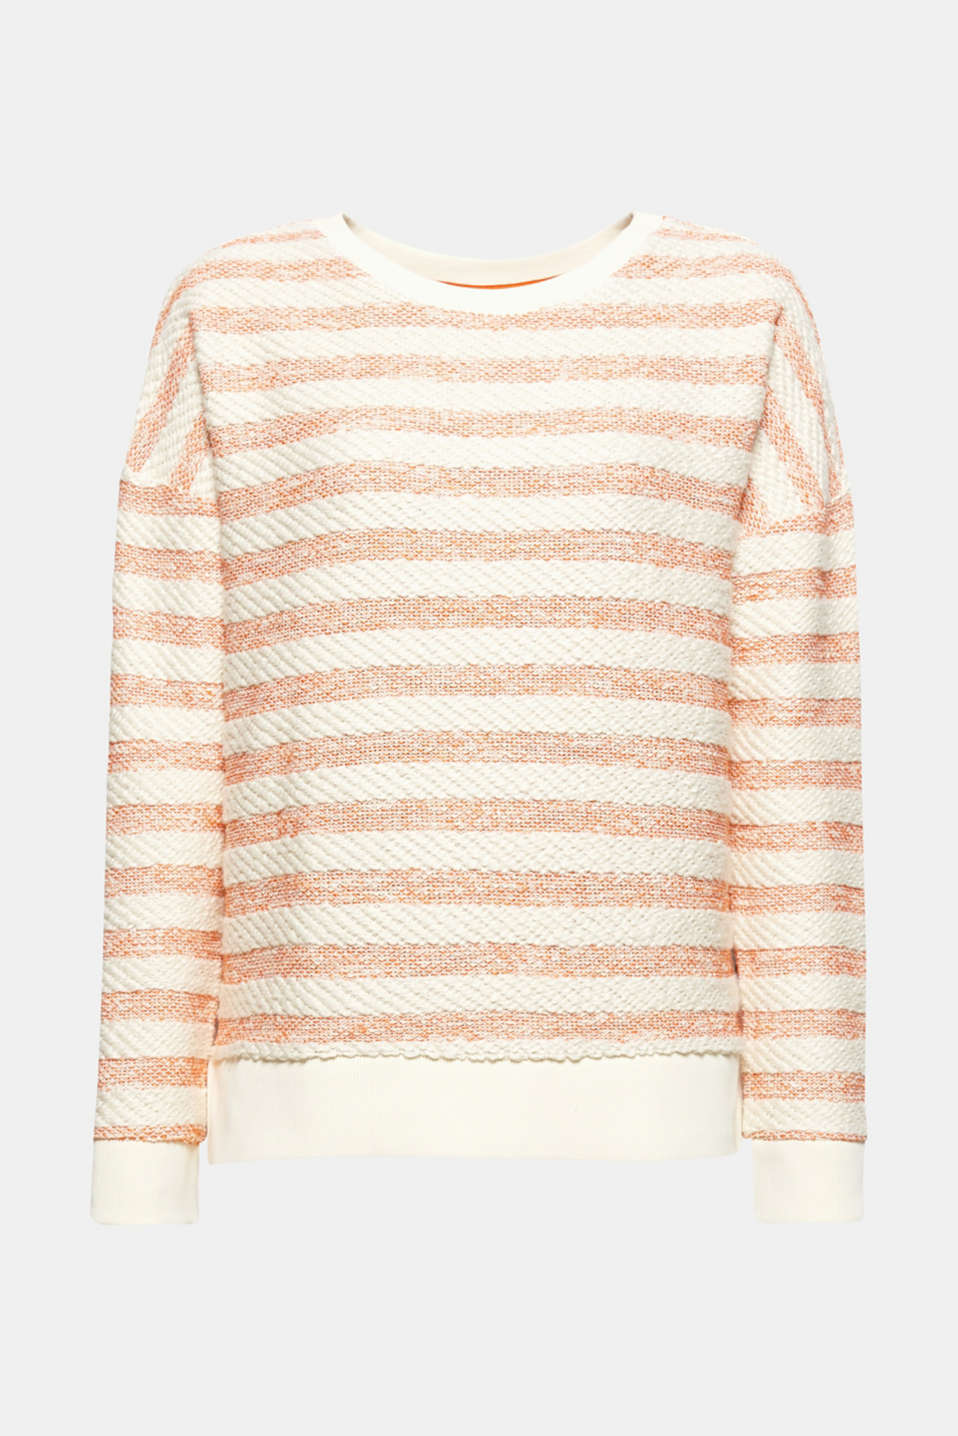 Fluffy soft textured stripes and the relaxed, casual high-low silhouette give this sweatshirt its brand new look.